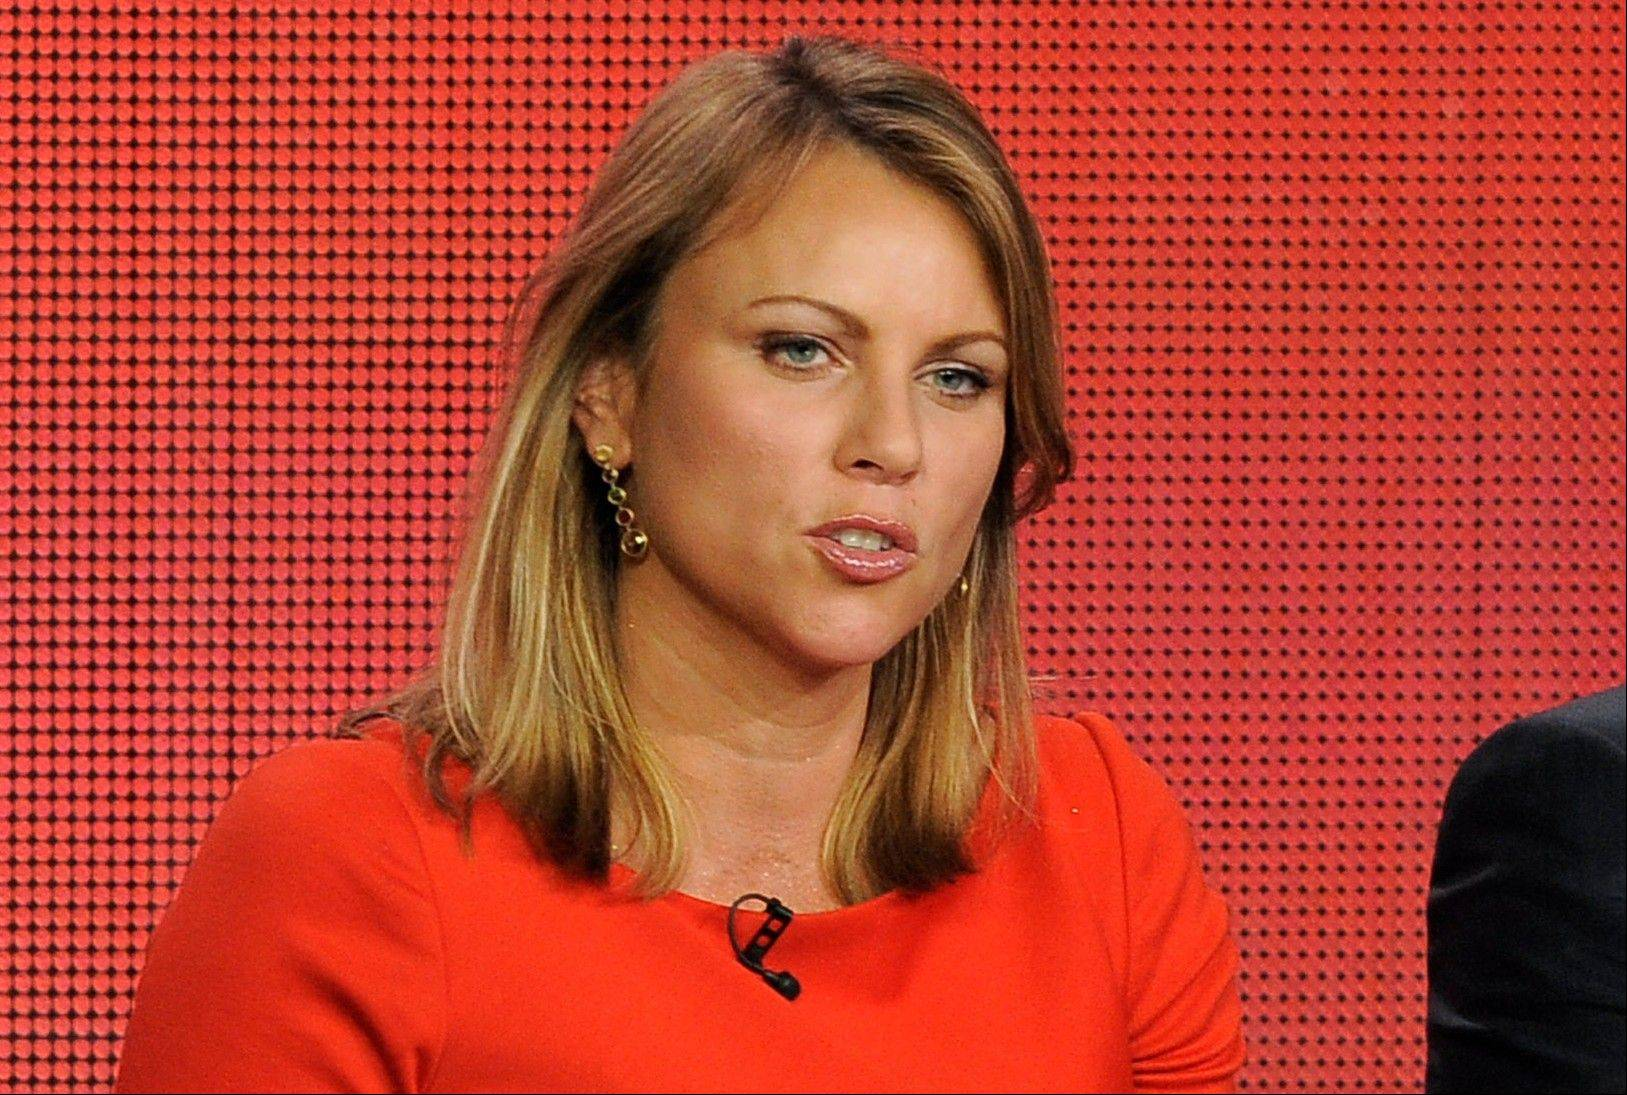 CBS has ordered �60 Minutes� correspondent Lara Logan and her producer to take a leave of absence following a critical internal review of their handling in the show�s October story on the Benghazi raid.